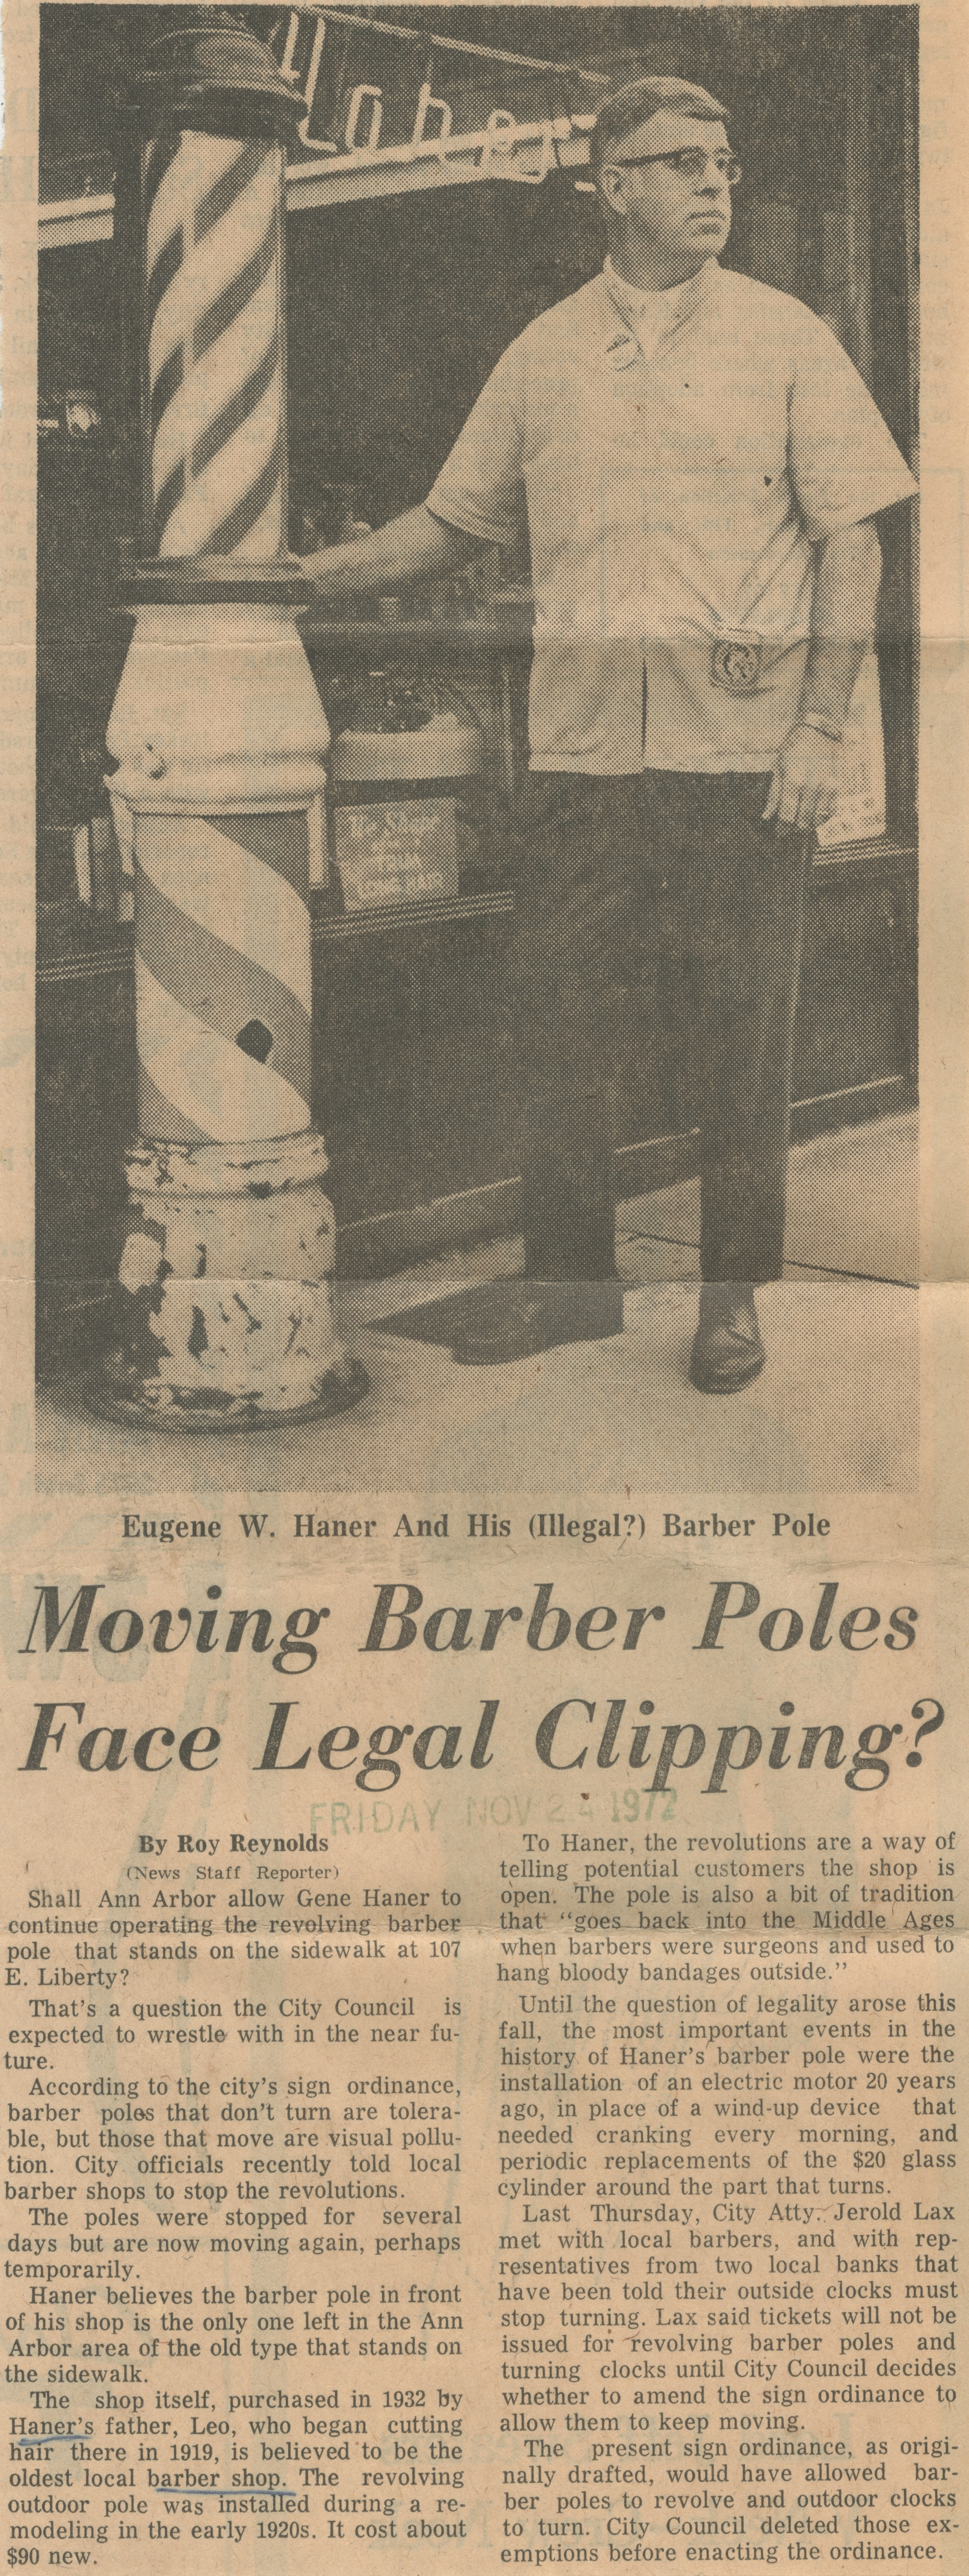 Moving Barber Poles Face Legal Clipping? image